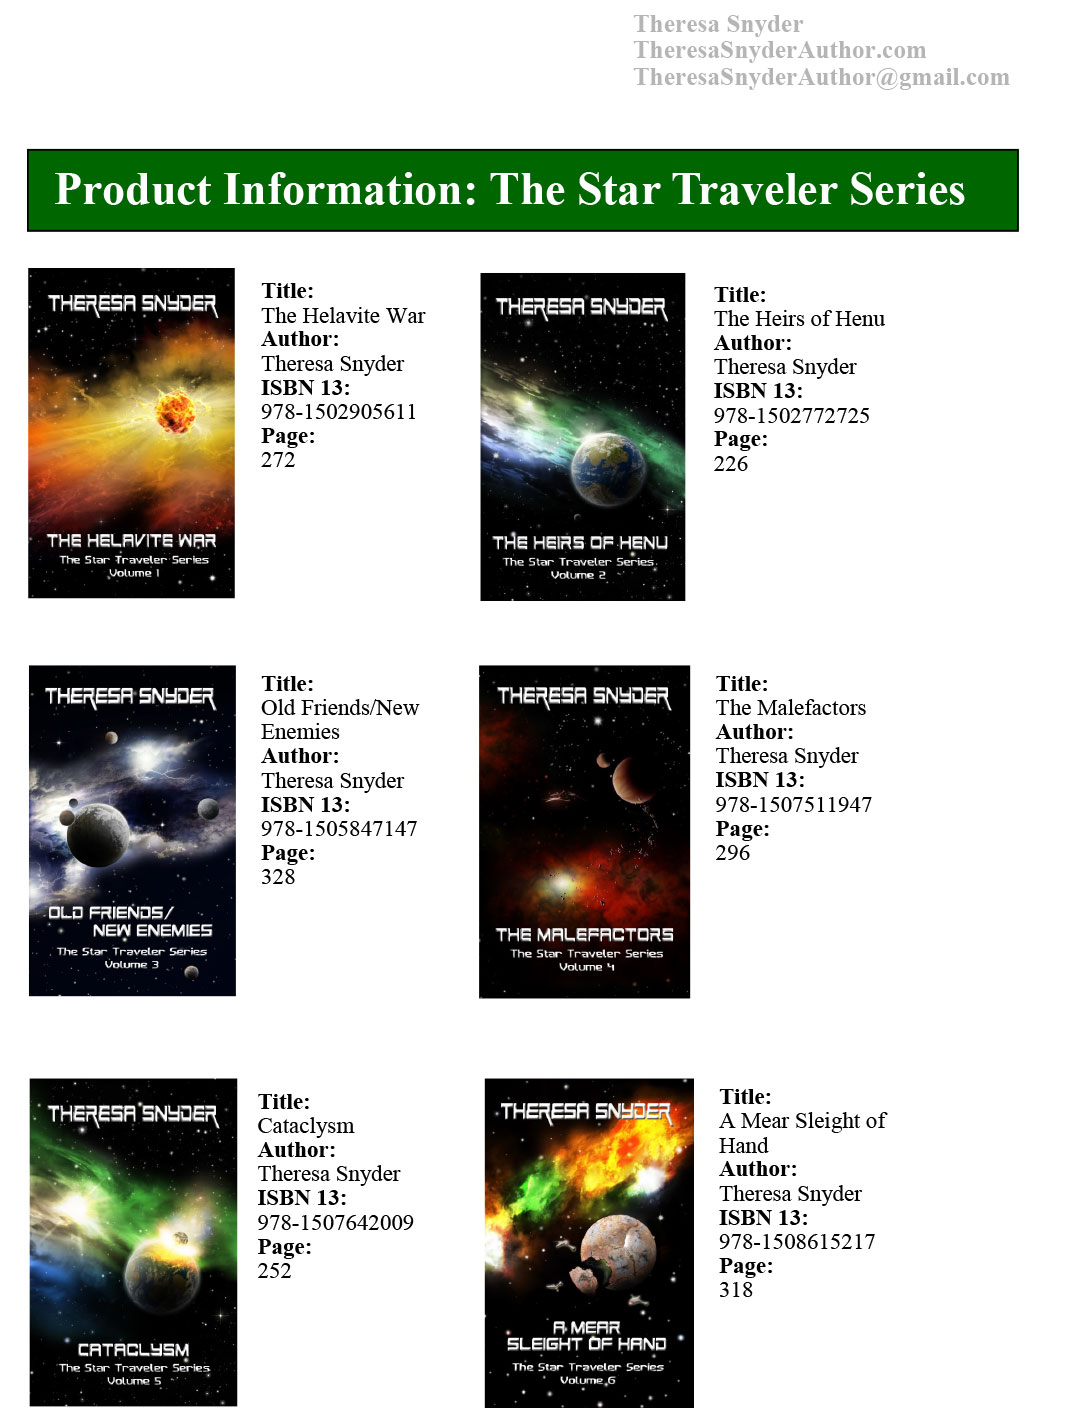 Product info: The Star Traveler Series